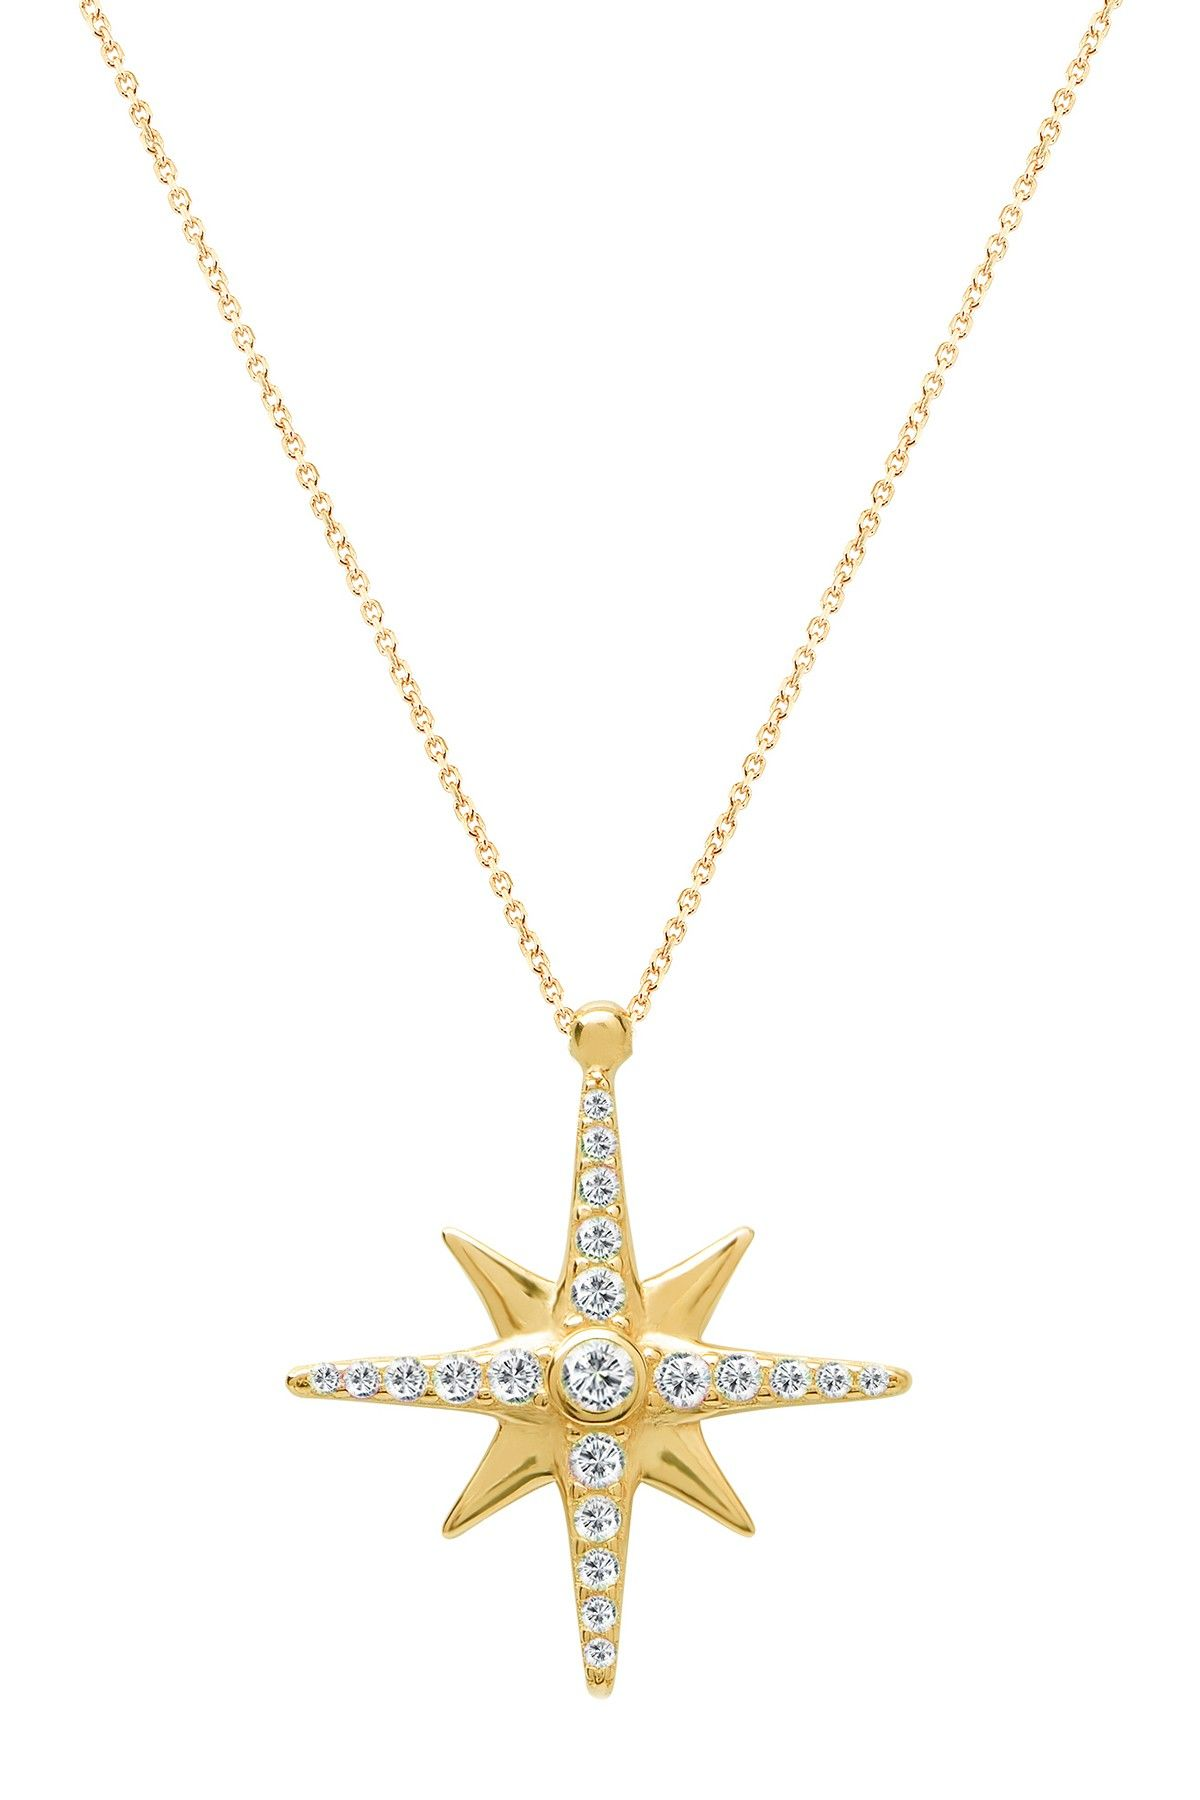 Gab cos designs north star diamond cz set pendant necklace fashion